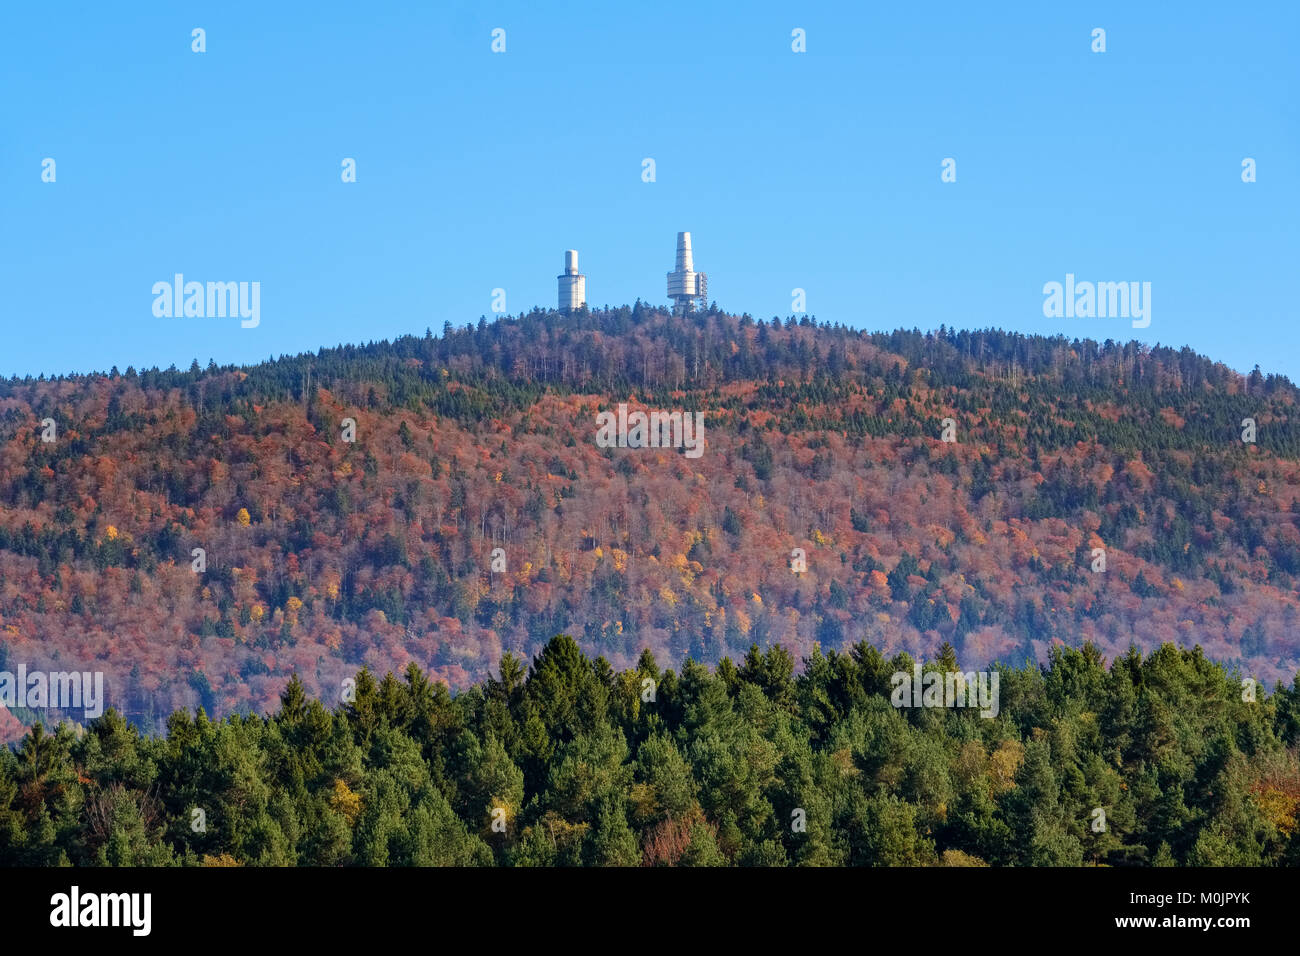 Telecommunication tower and observation tower, Hoher Bogen, near Rimbach, Bavarian Forest, Upper Palatinate, Bavaria, - Stock Image